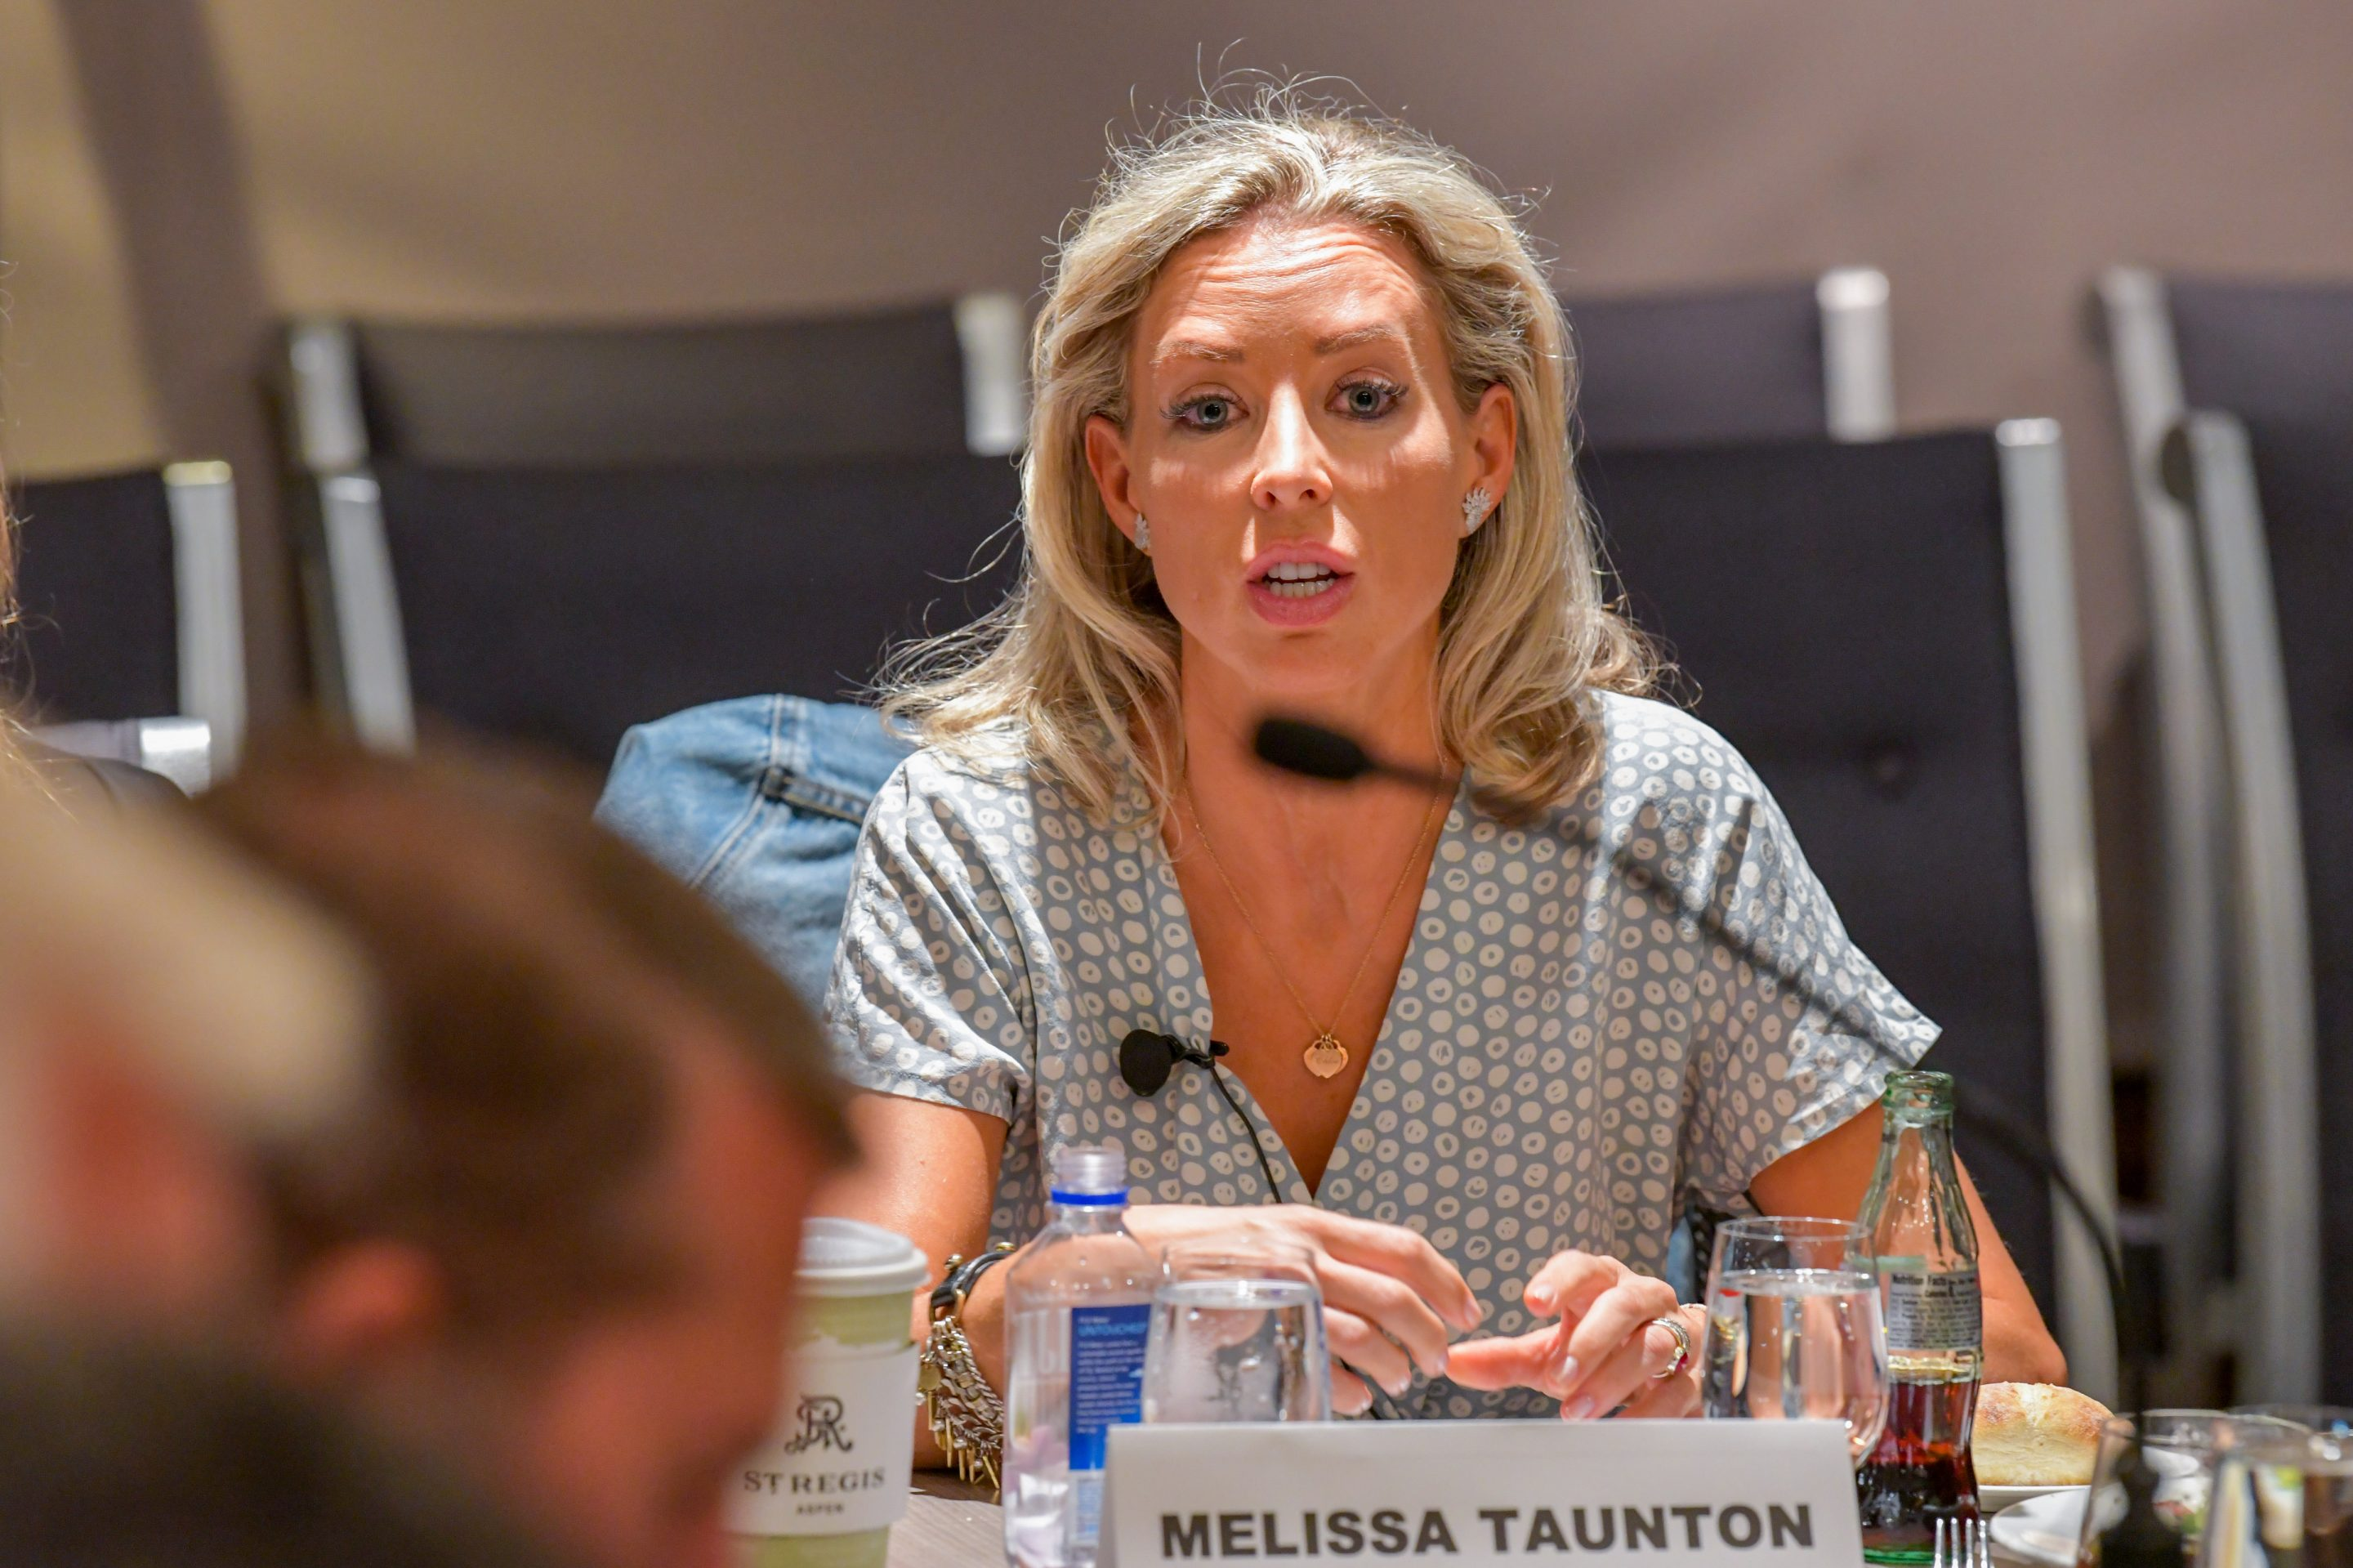 New Enterprise Associates partner Melissa Taunton speaks at Fortune's Brainstorm Tech conference on July 16, 2019, in Aspen, Colo.